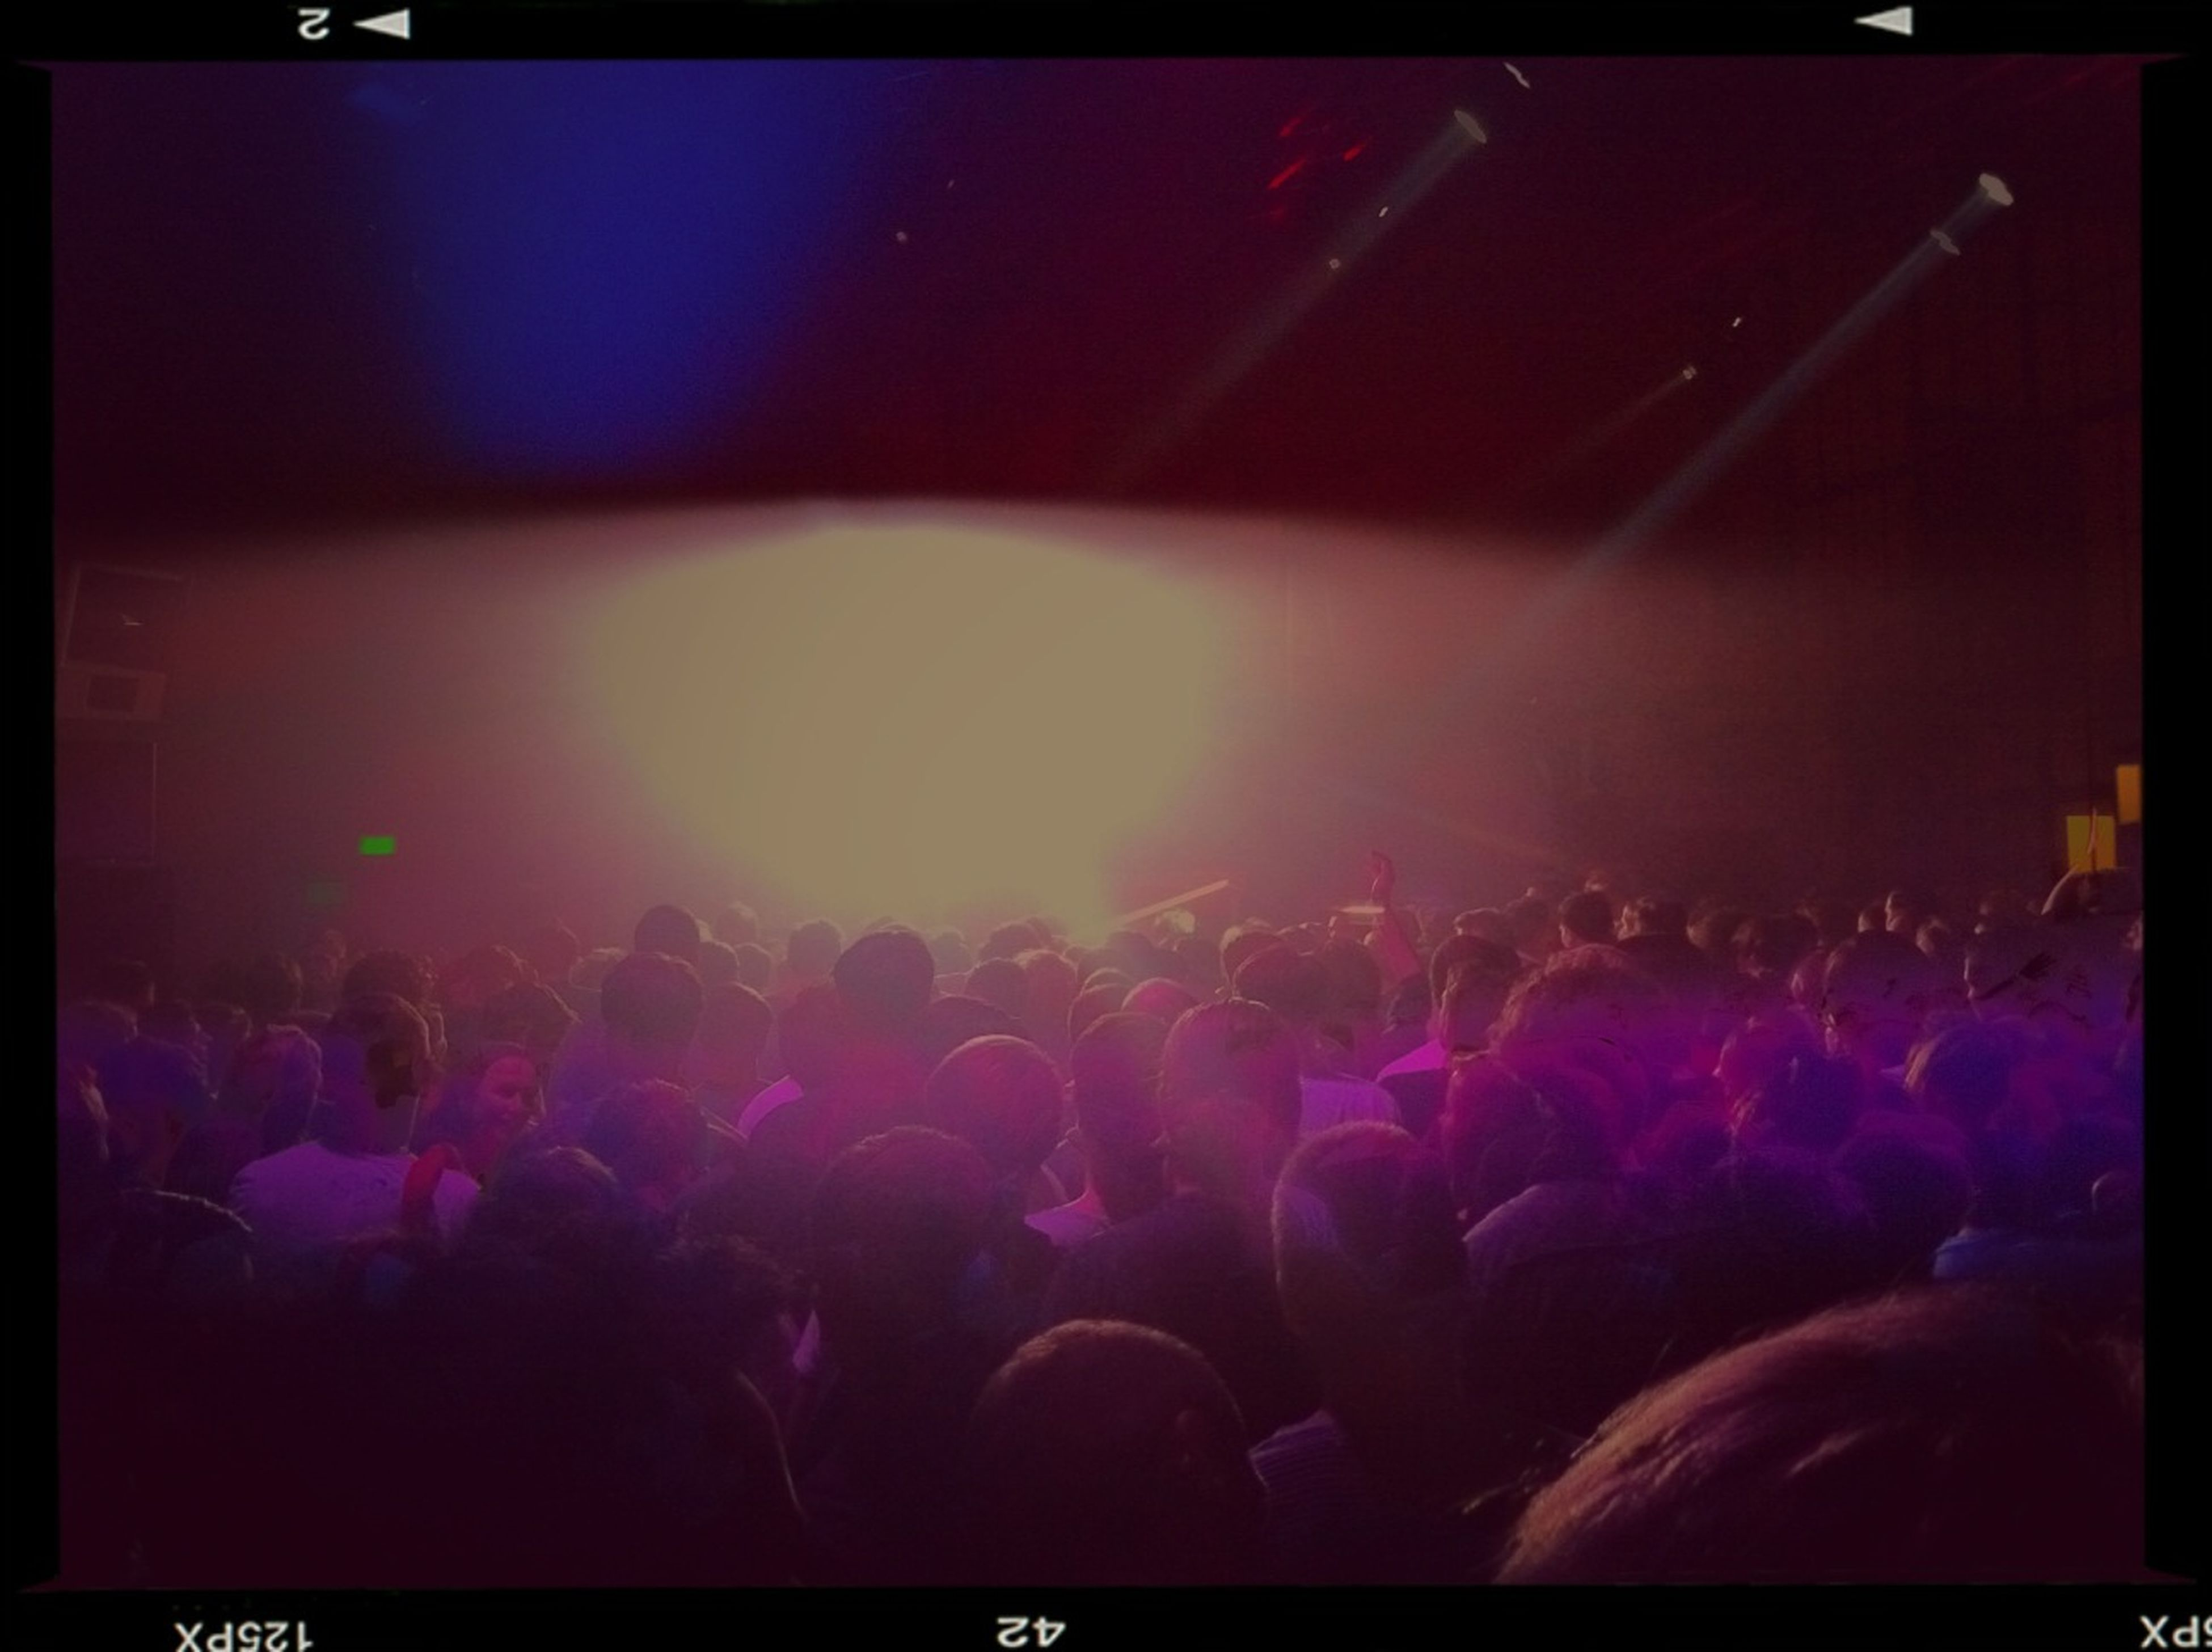 transfer print, illuminated, indoors, night, large group of people, music, arts culture and entertainment, auto post production filter, crowd, nightlife, lifestyles, men, event, concert, performance, enjoyment, person, leisure activity, light - natural phenomenon